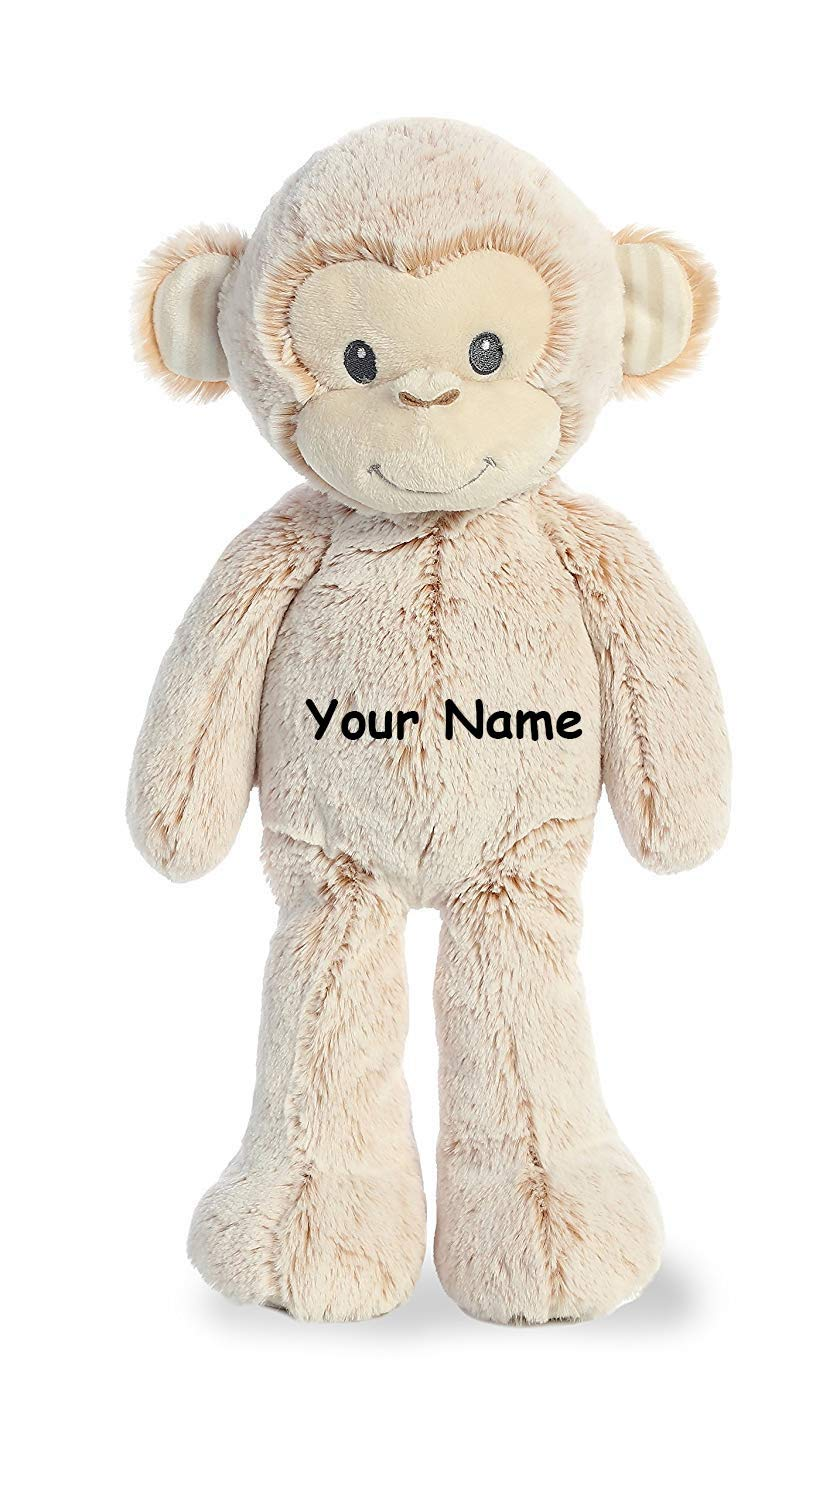 Ebba Personalized Cuddler Marlow Monkey Plush Stuffed Animal Toy - 14 Inches by Ebba